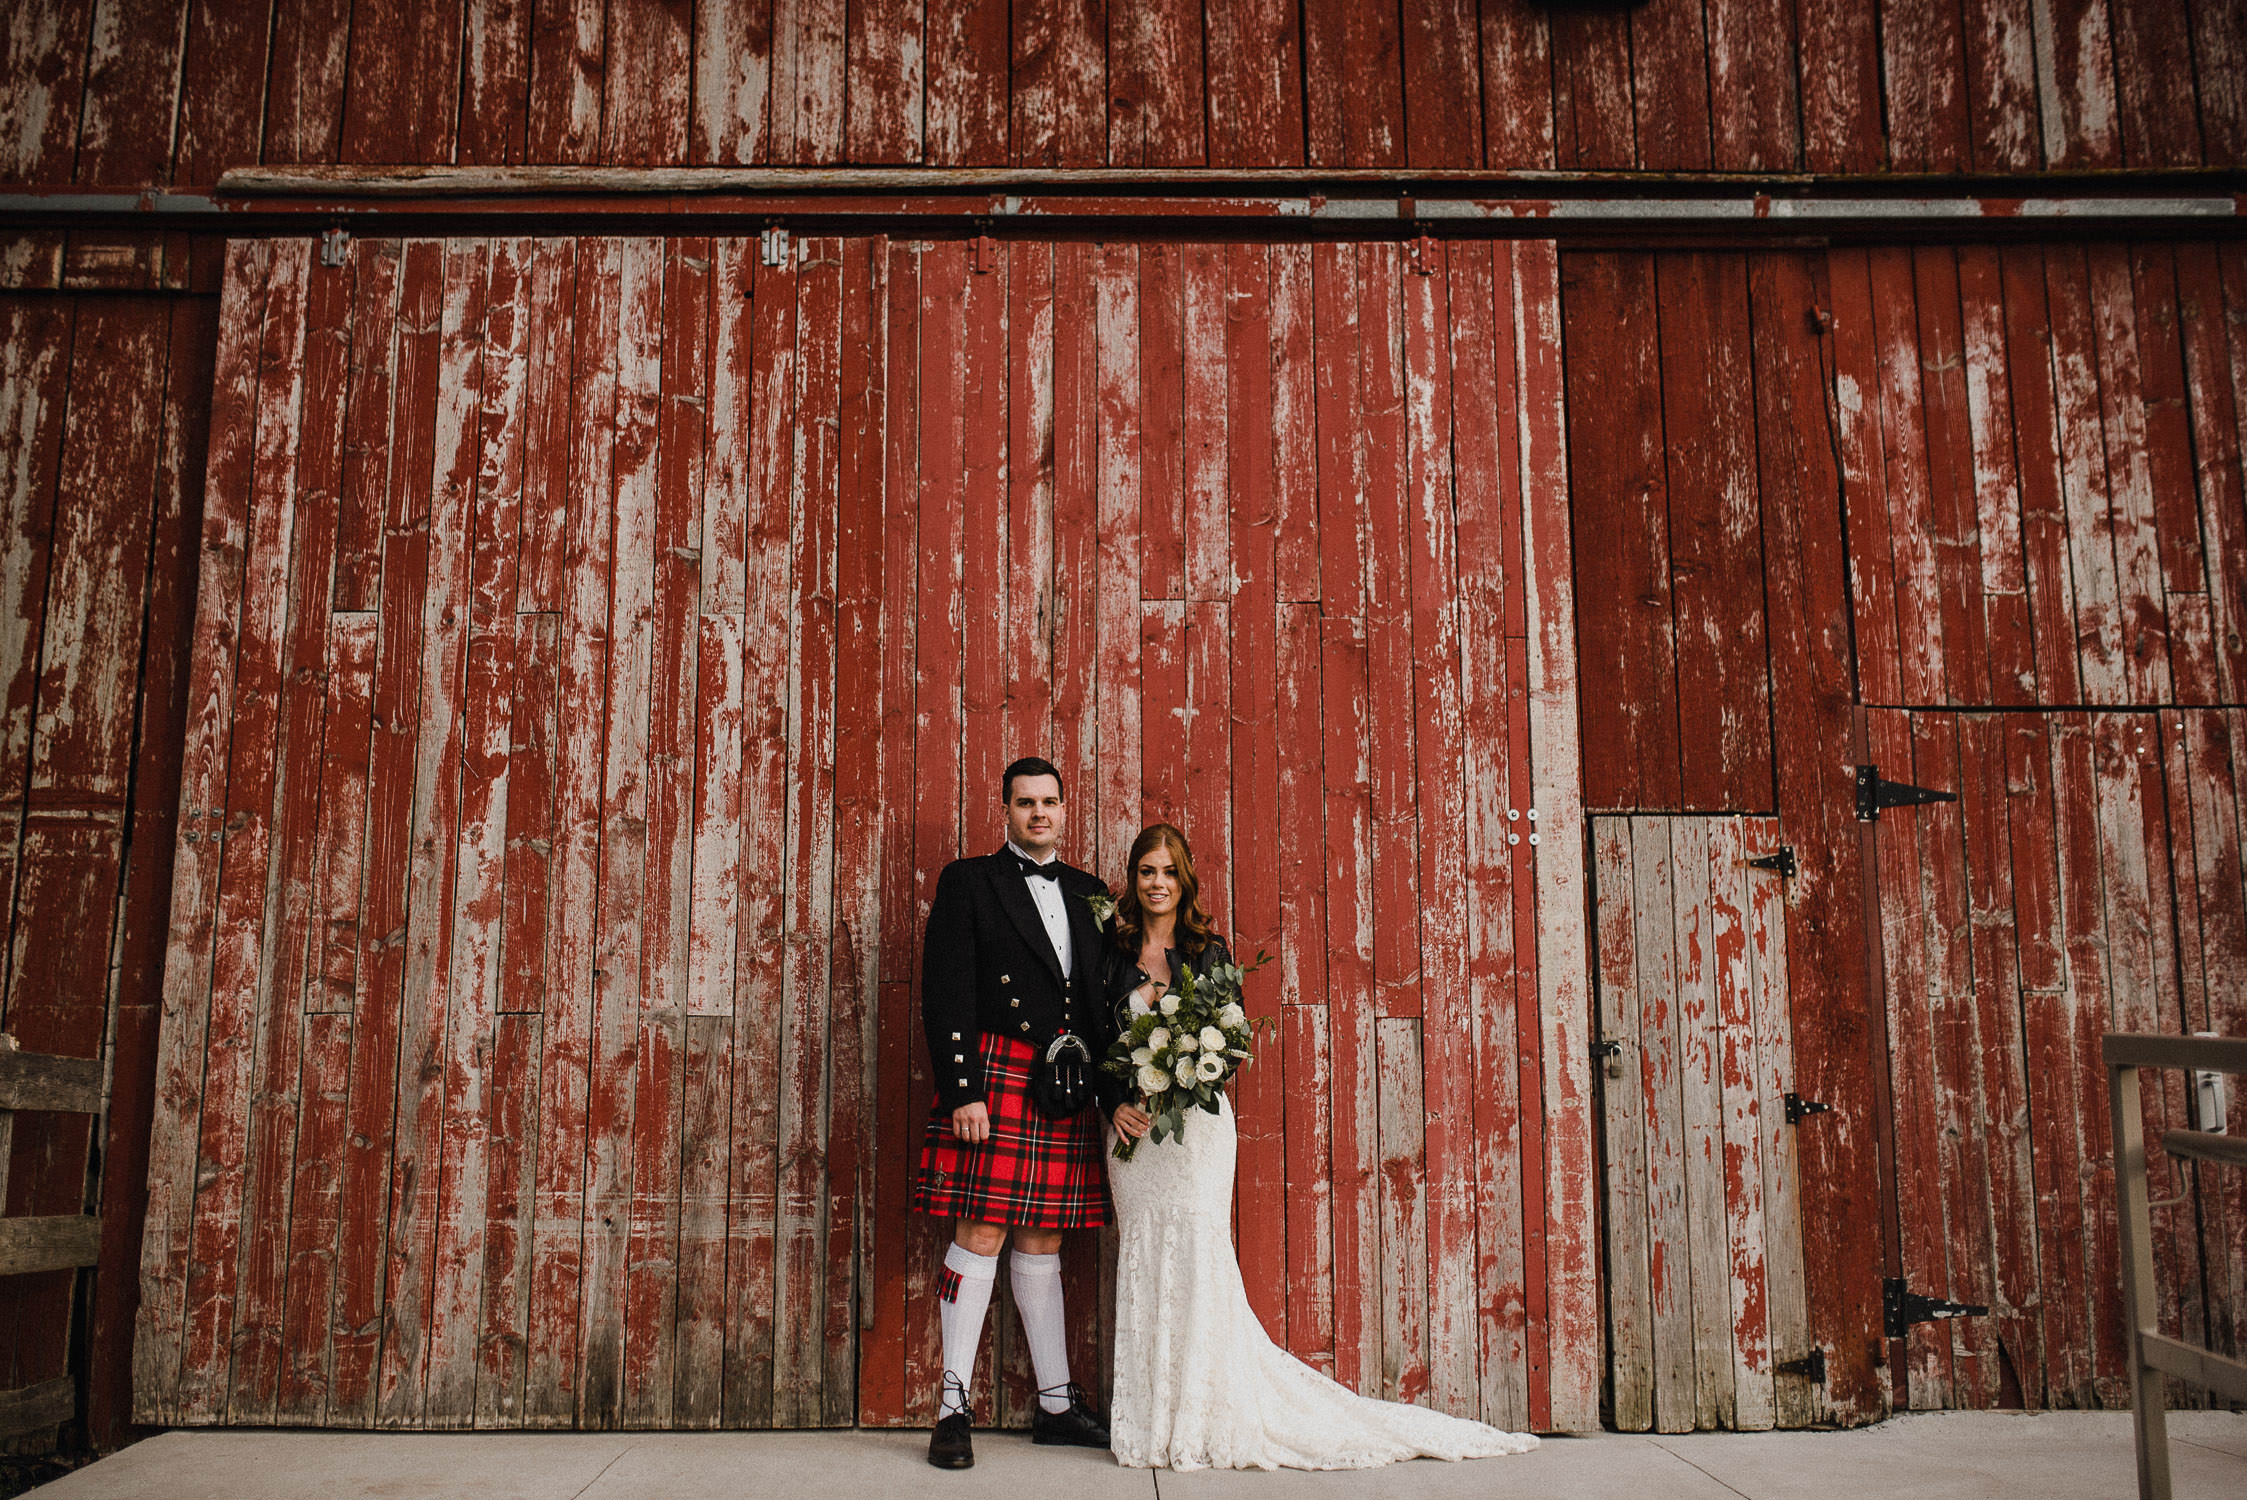 Portrait of the bride and groom in front of a red barn after their wedding ceremony at Cambium Farm.